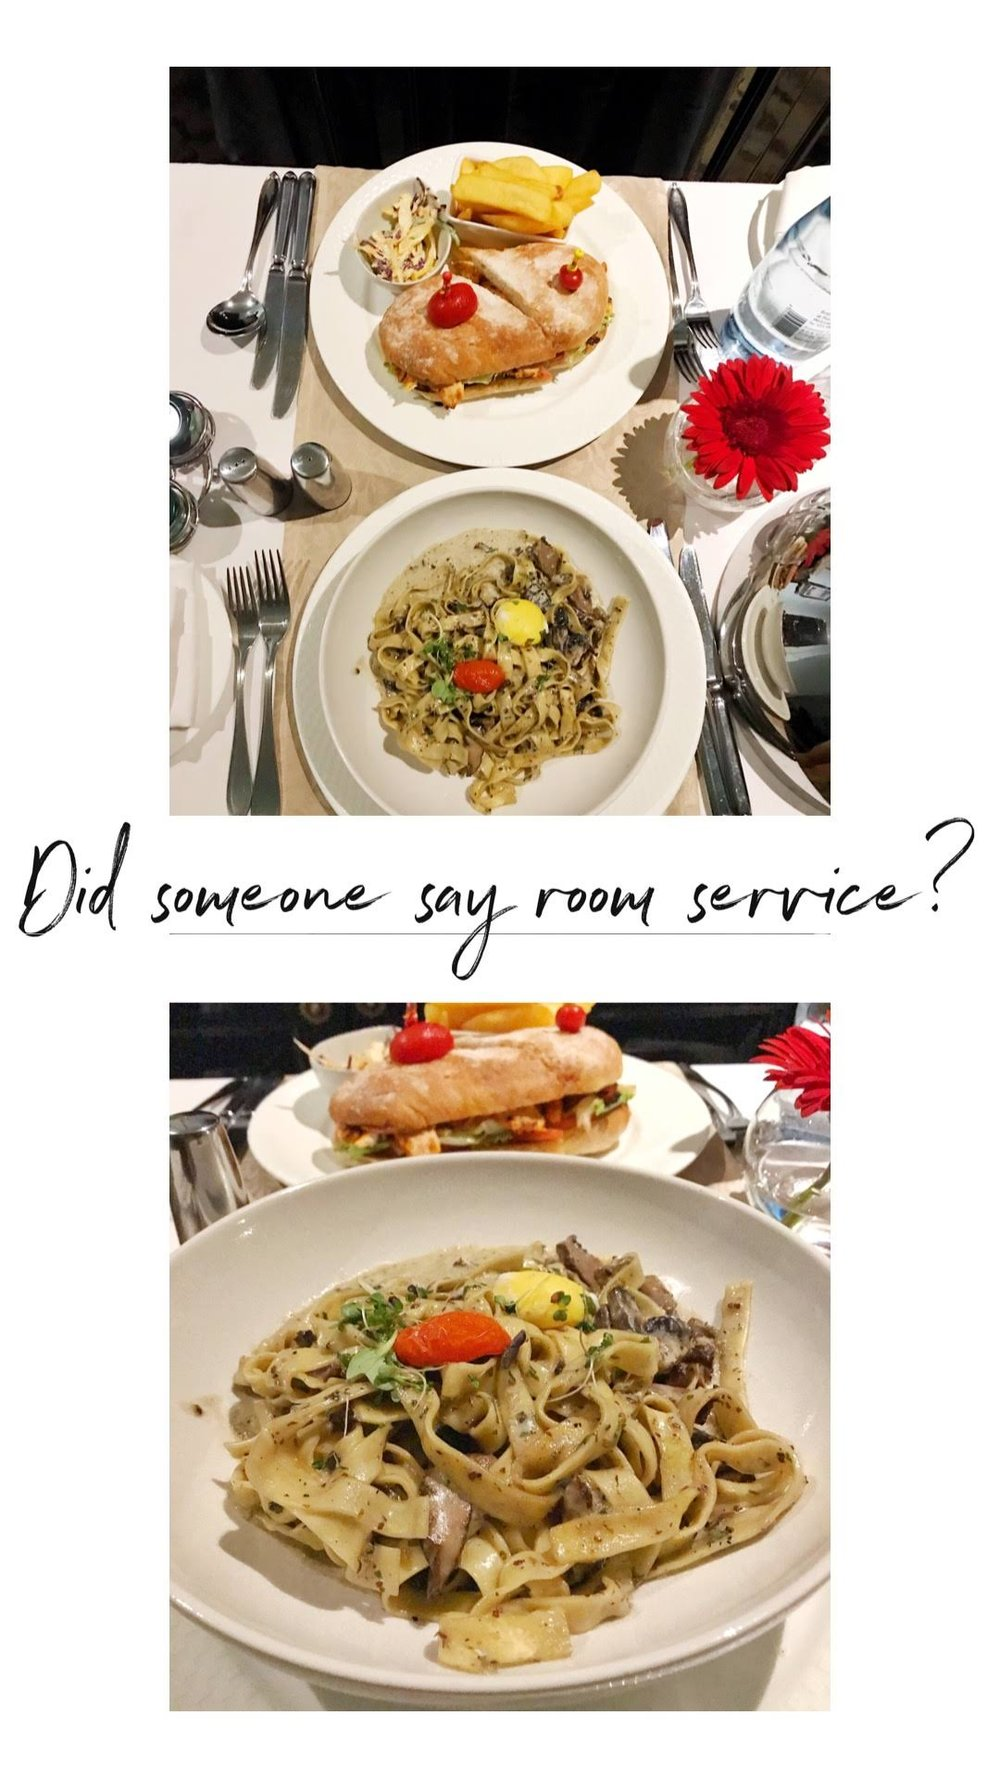 First Time Ordering Room Service - So after our long day we were both exhausted from being out in the sun and being jetlagged. Aria went to sleep at 6PM and poor me was left to fend for myself, so I ordered room service!I ordered Biltong Carbonara and omg it was seriously so so good! I would def order that again and could eat it several times!